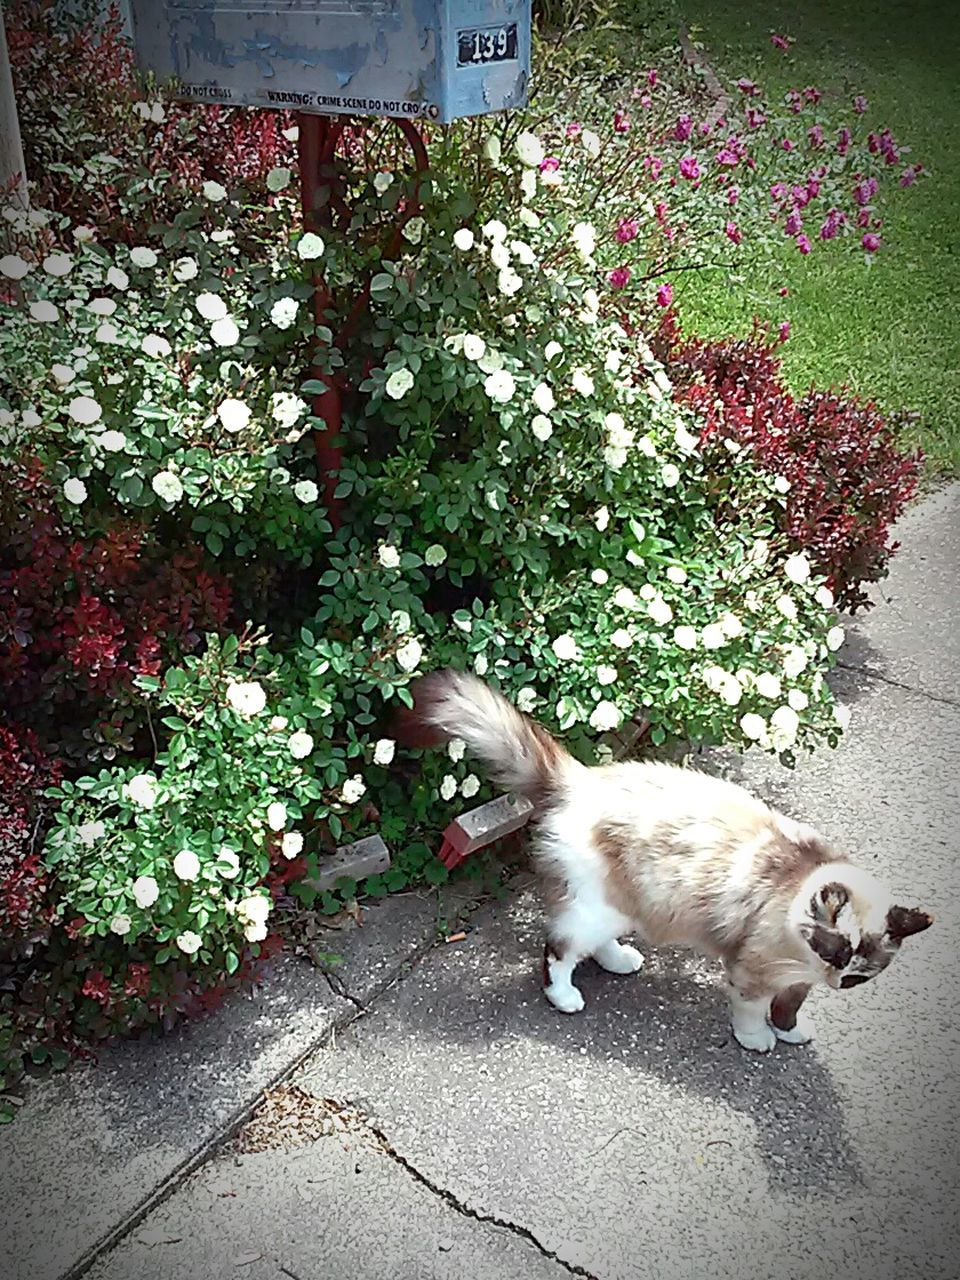 pets, domestic animals, animal themes, one animal, plant, mammal, domestic cat, high angle view, outdoors, day, no people, flower, nature, growth, dog, feline